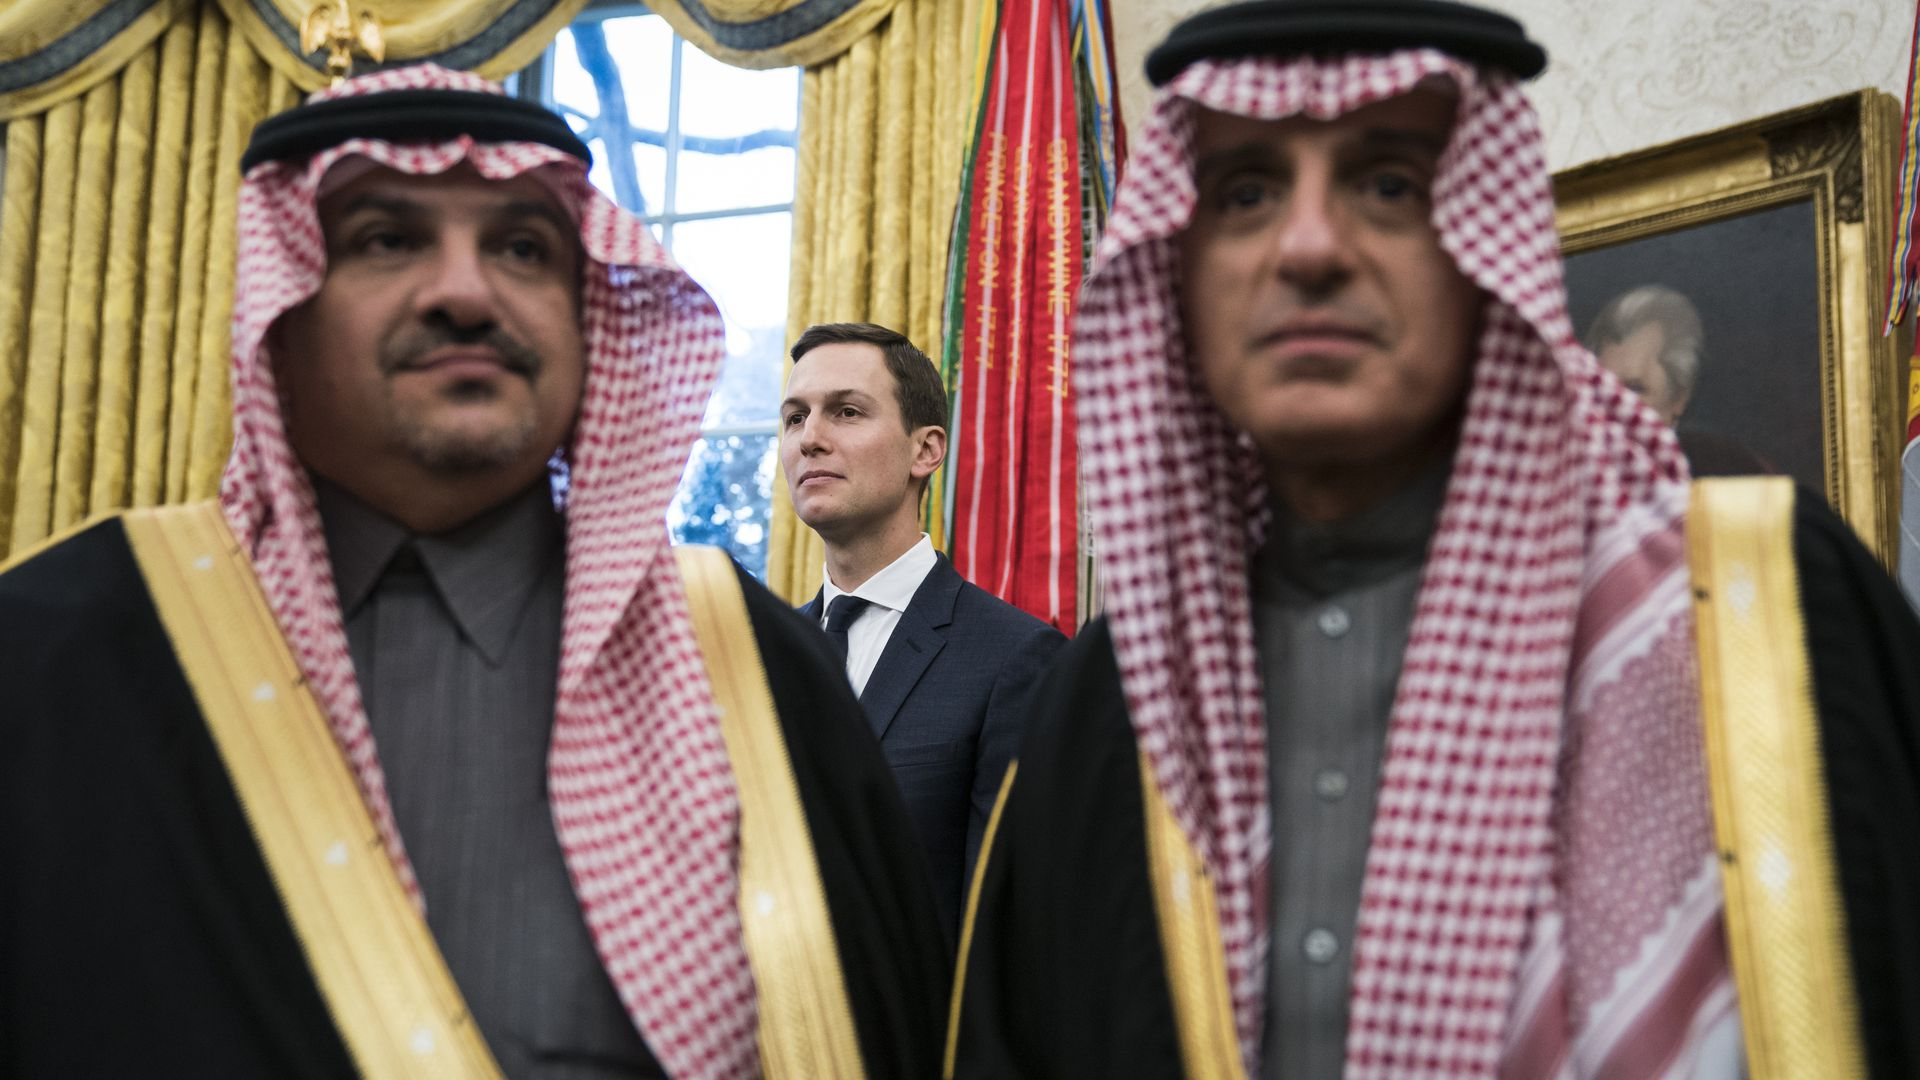 Jared Kushner stands behind two Saudi men.